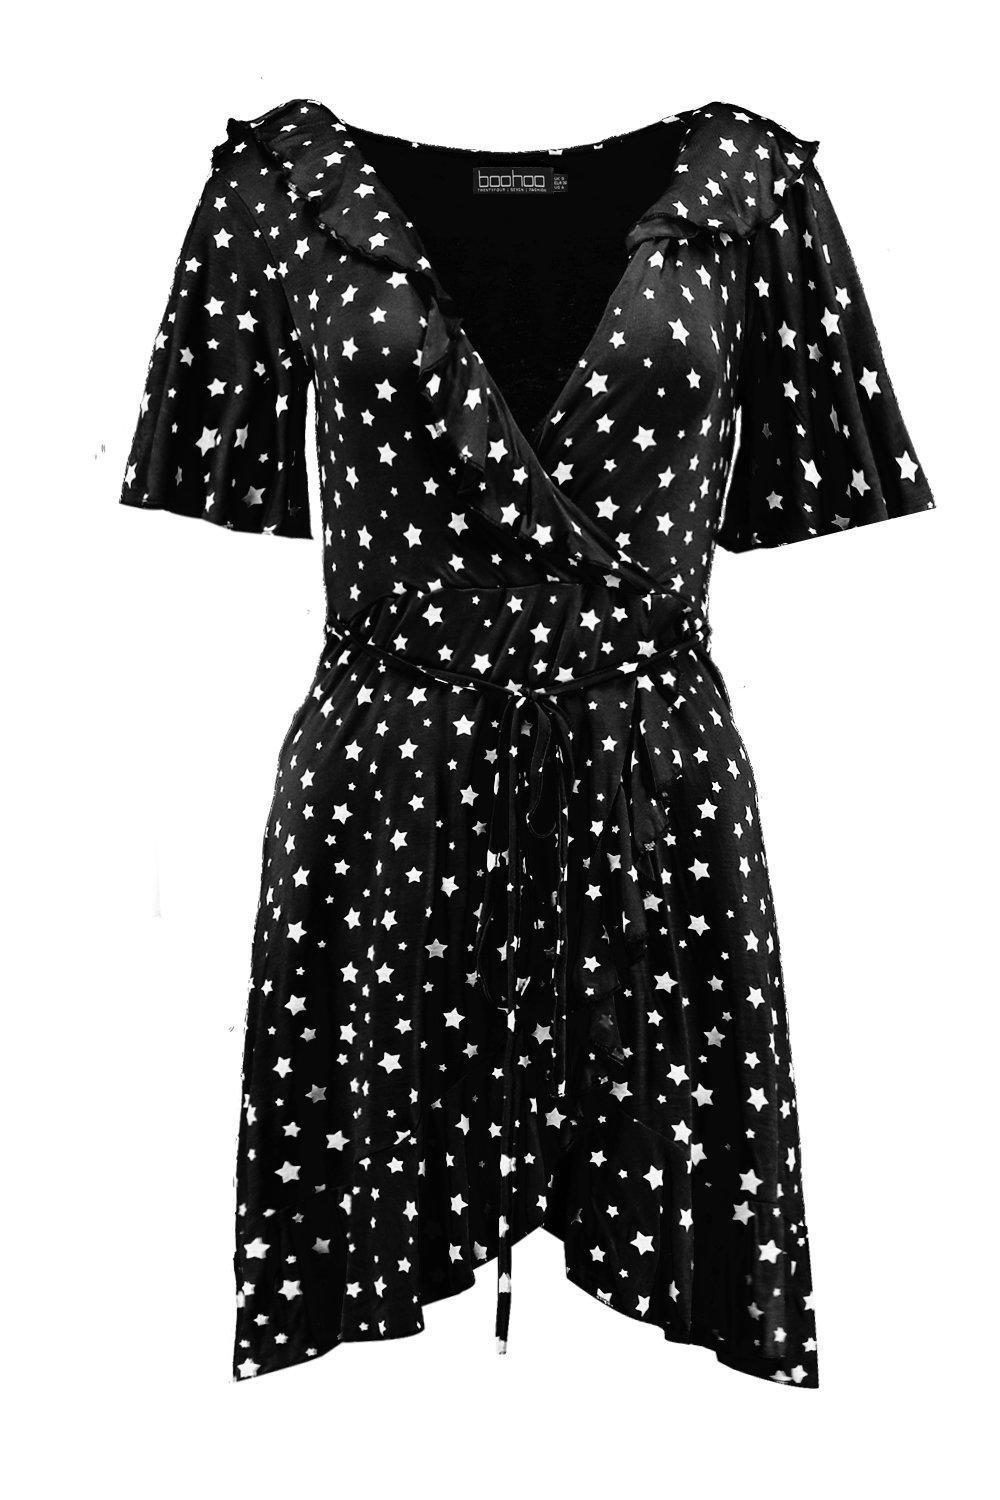 5e7c49e2937d Boohoo - Black Star Wrap Tea Dress - Lyst. View fullscreen